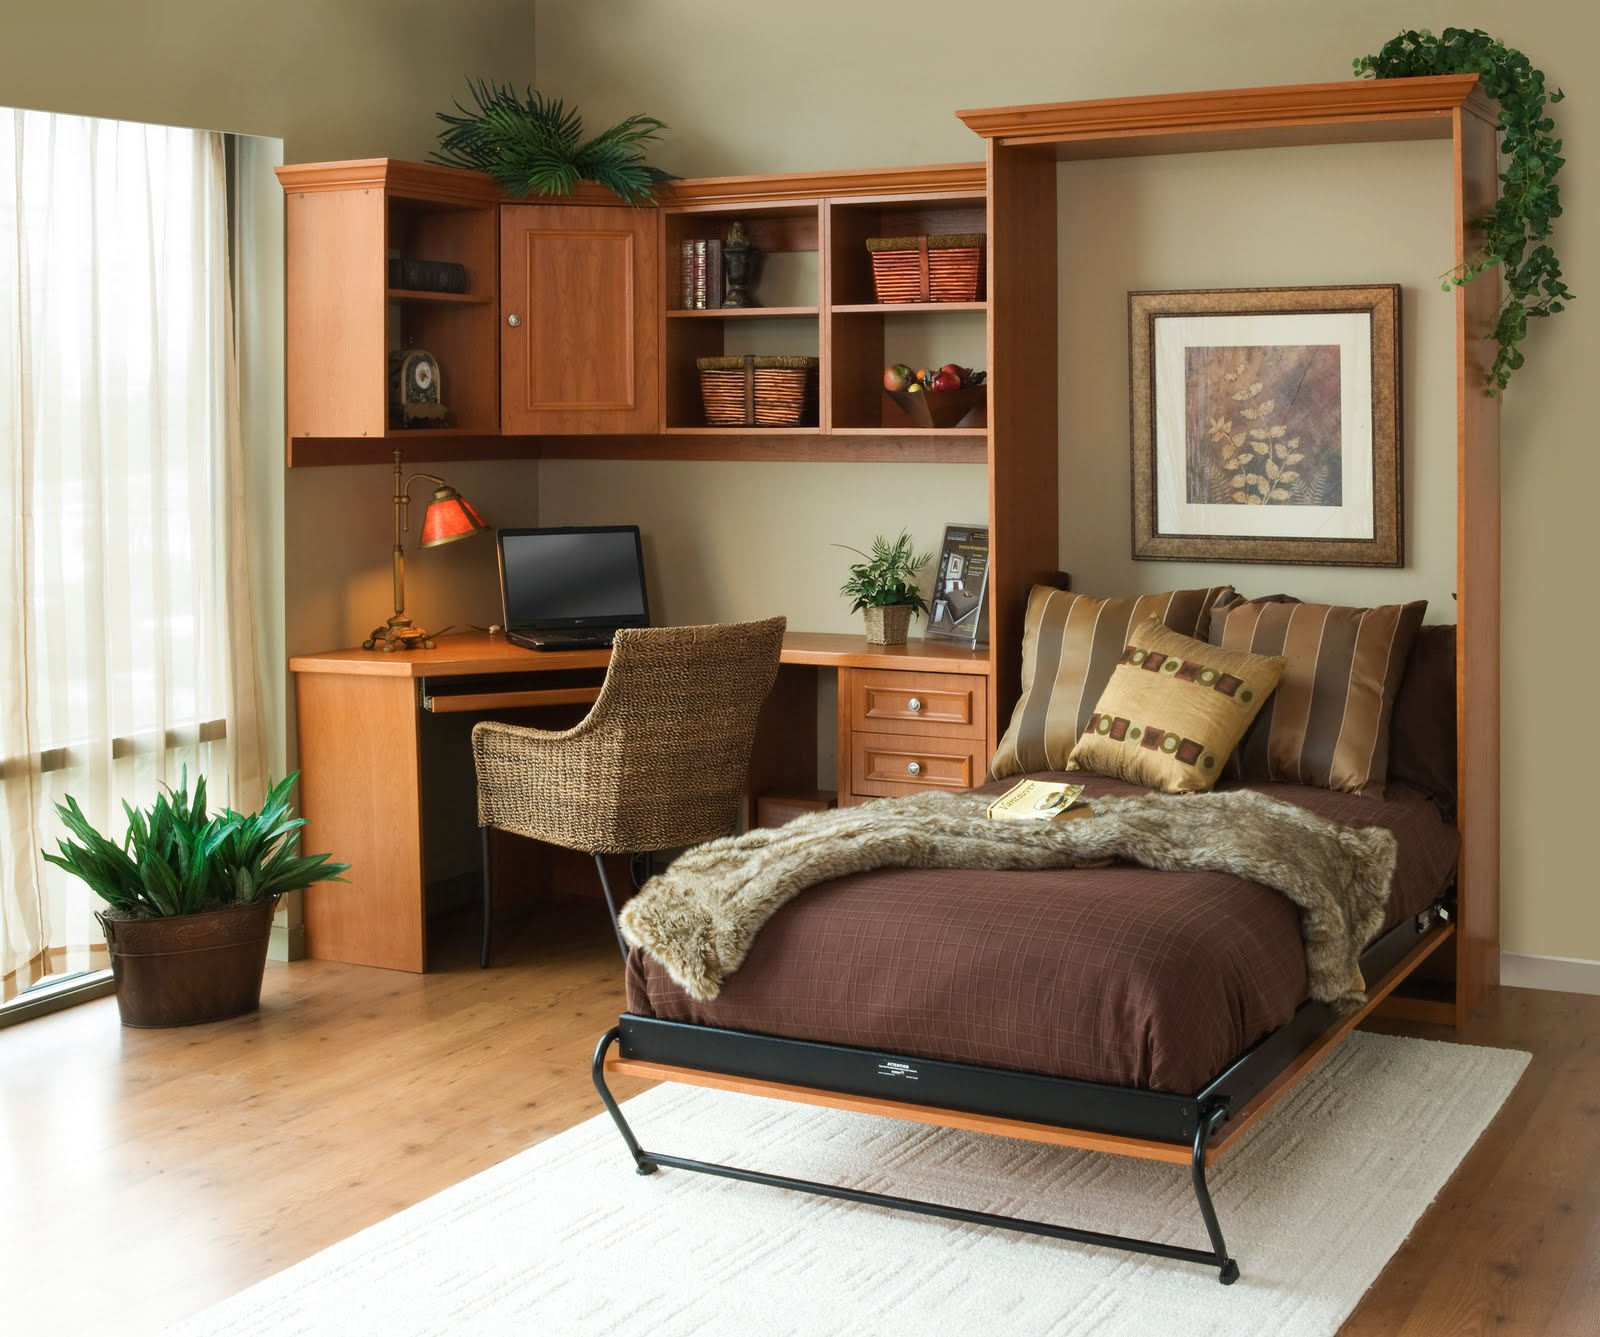 Fold out beds for small spaces - Fold out beds for small spaces ideas ...